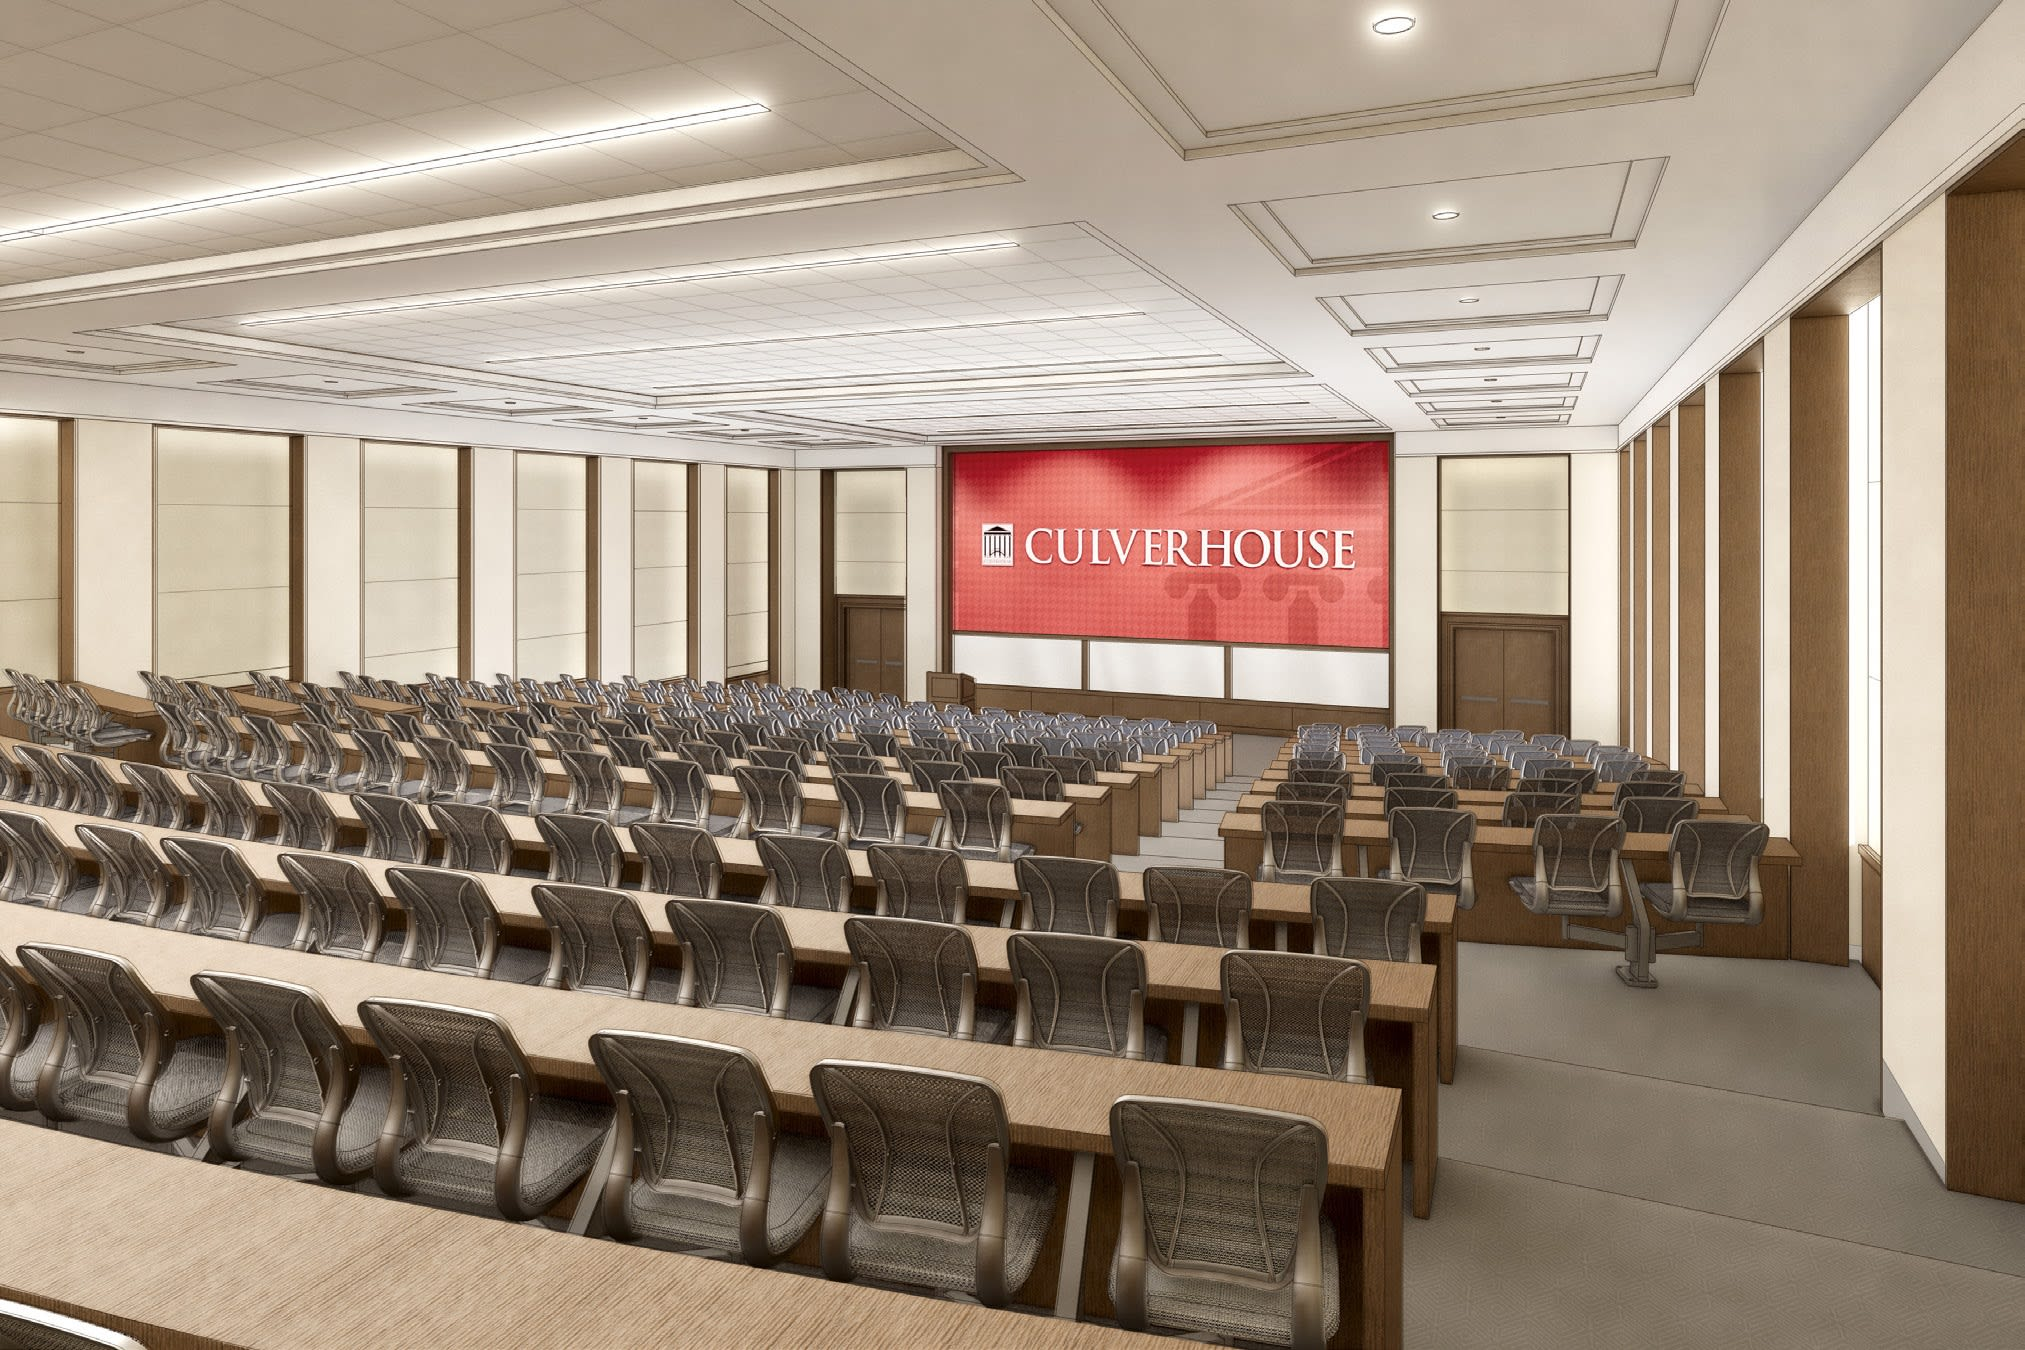 Hewson Hall, rednering of main lecture room